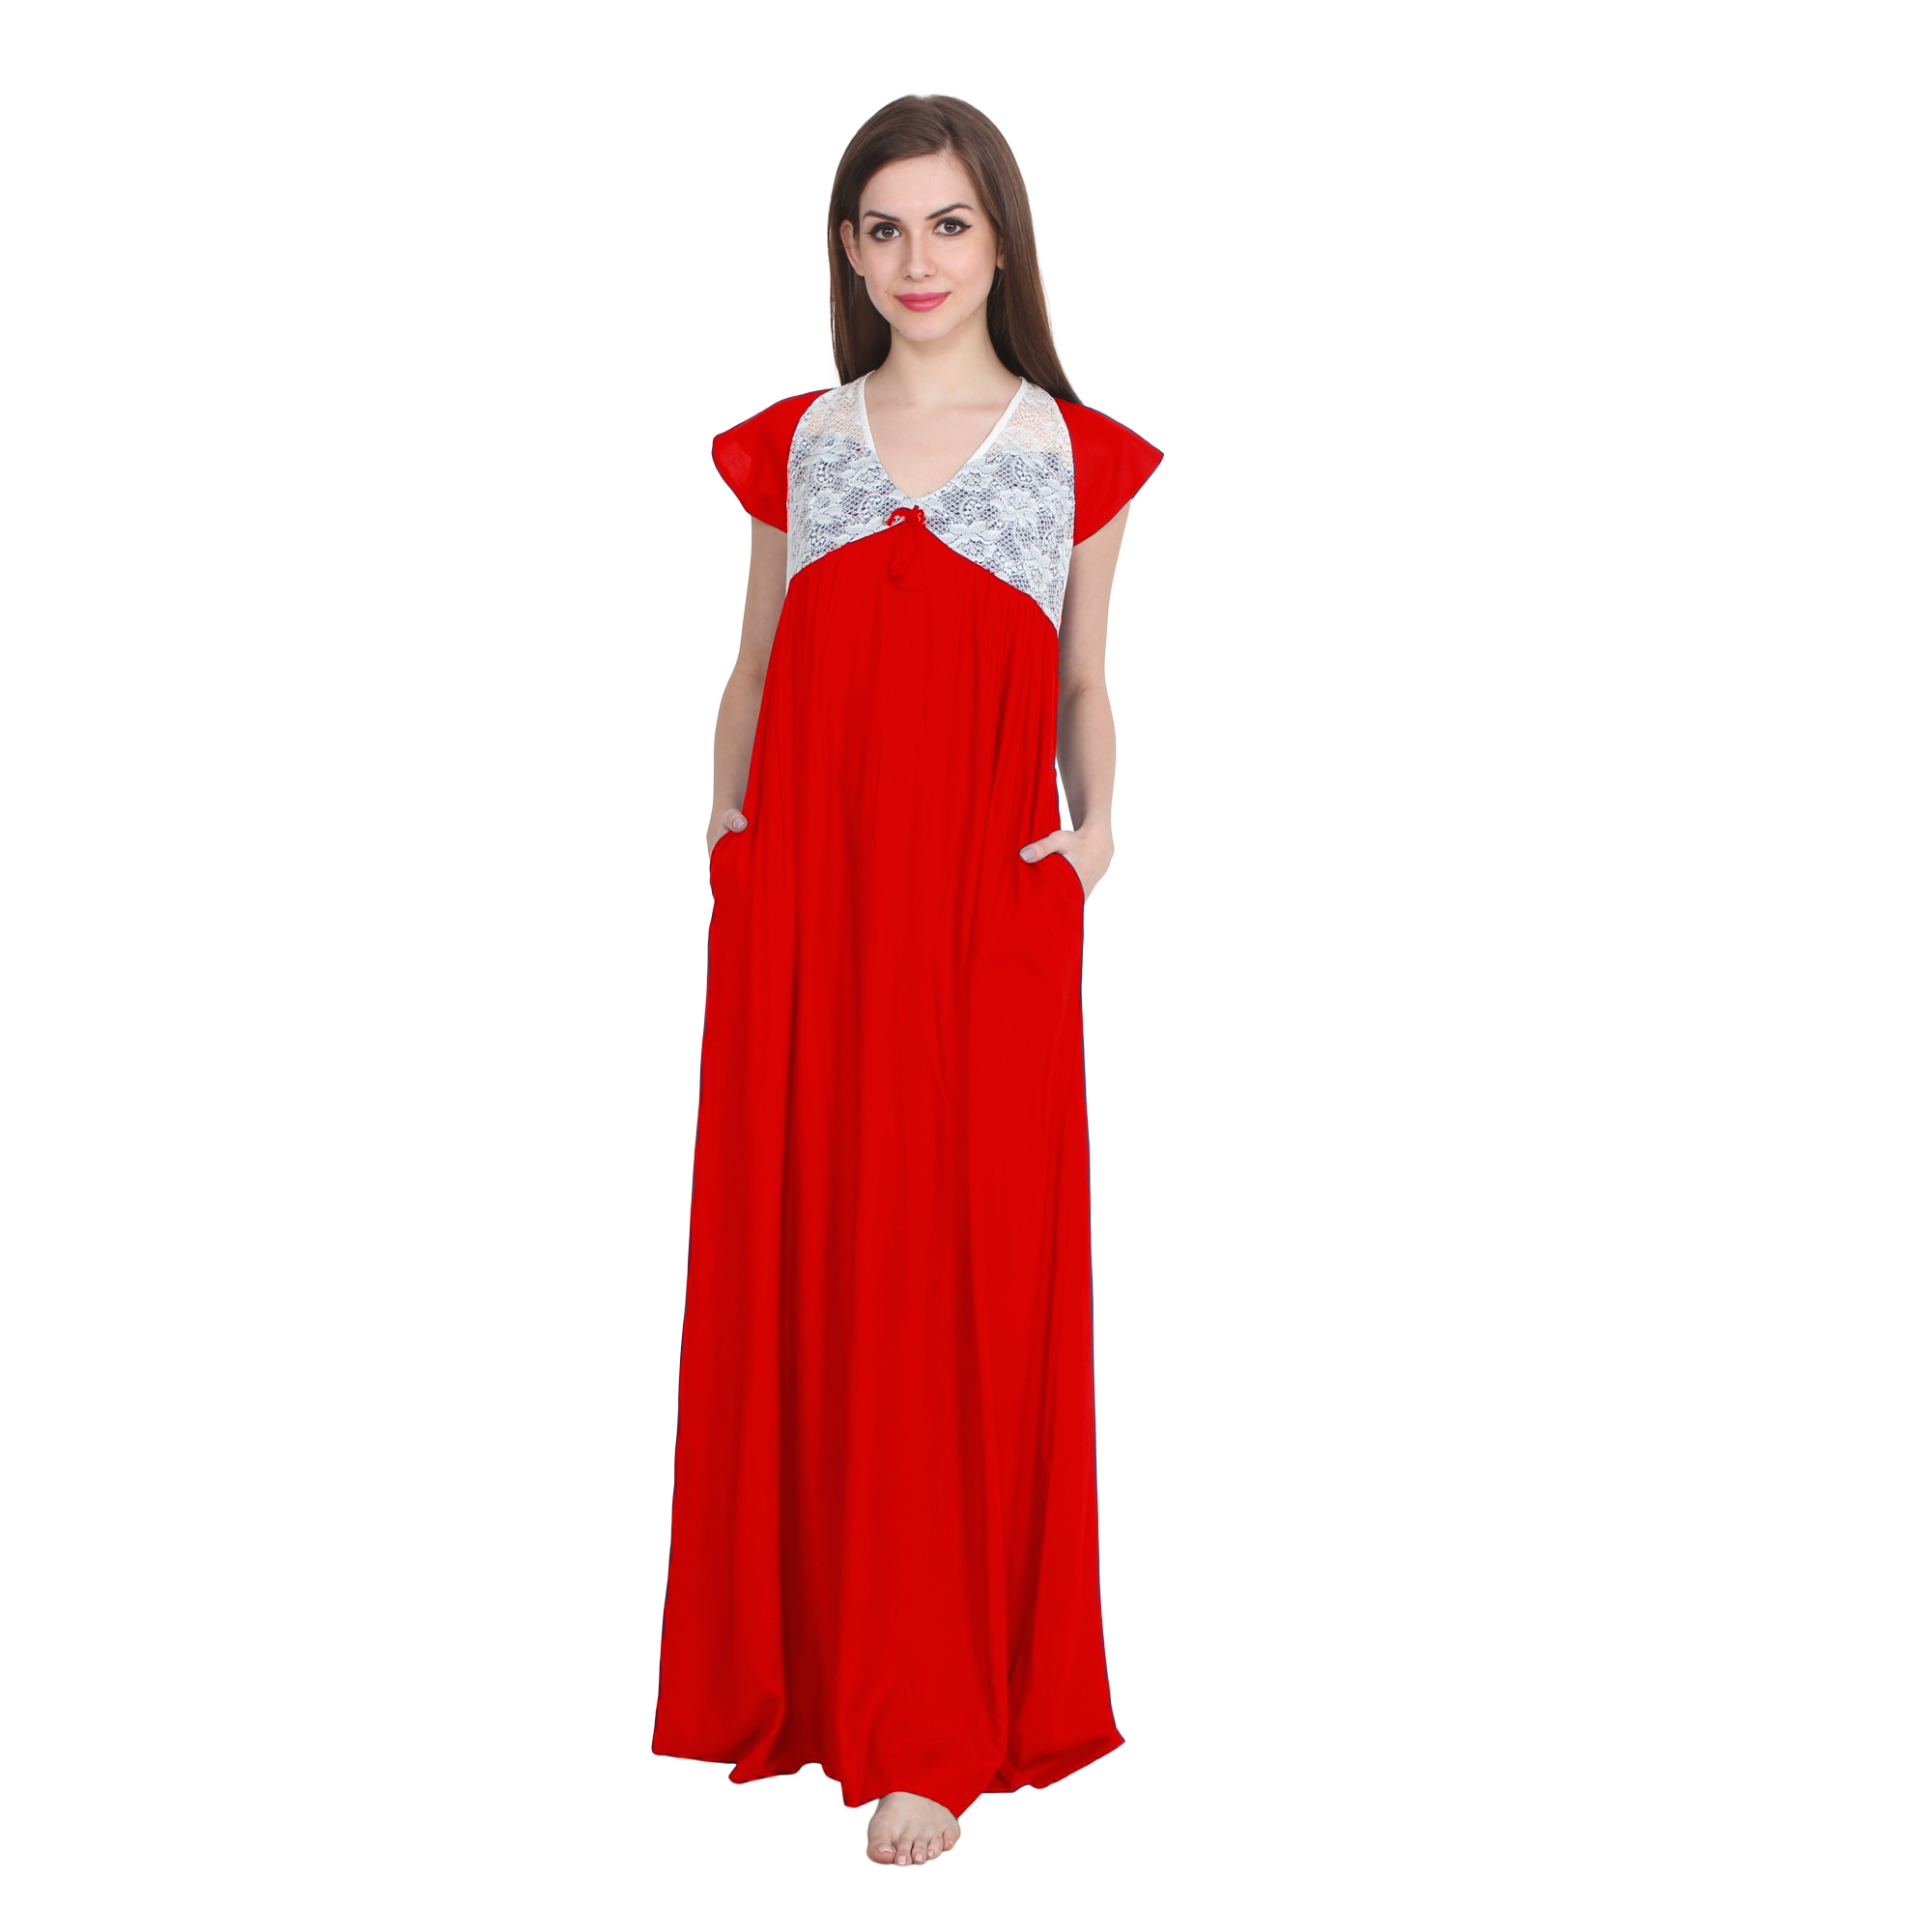 Lace Bodice Cap Sleeve Maxi Length Nighty in Red